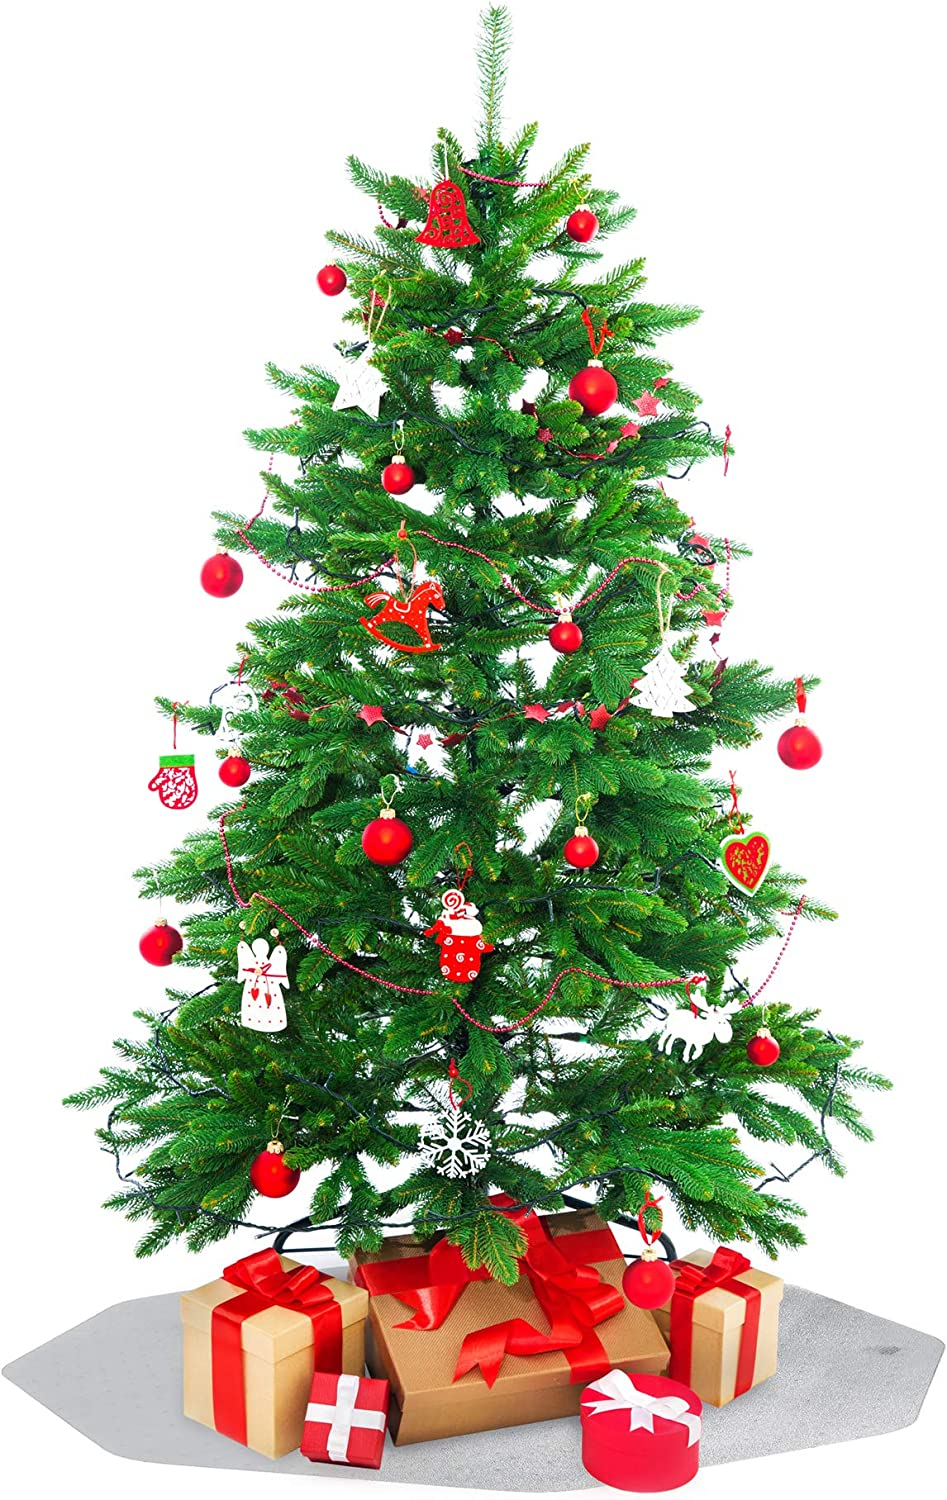 "Floortex Christmas Tree Mat Nine-Sided Clear 38"" x 39"" Hard Floor Protection"